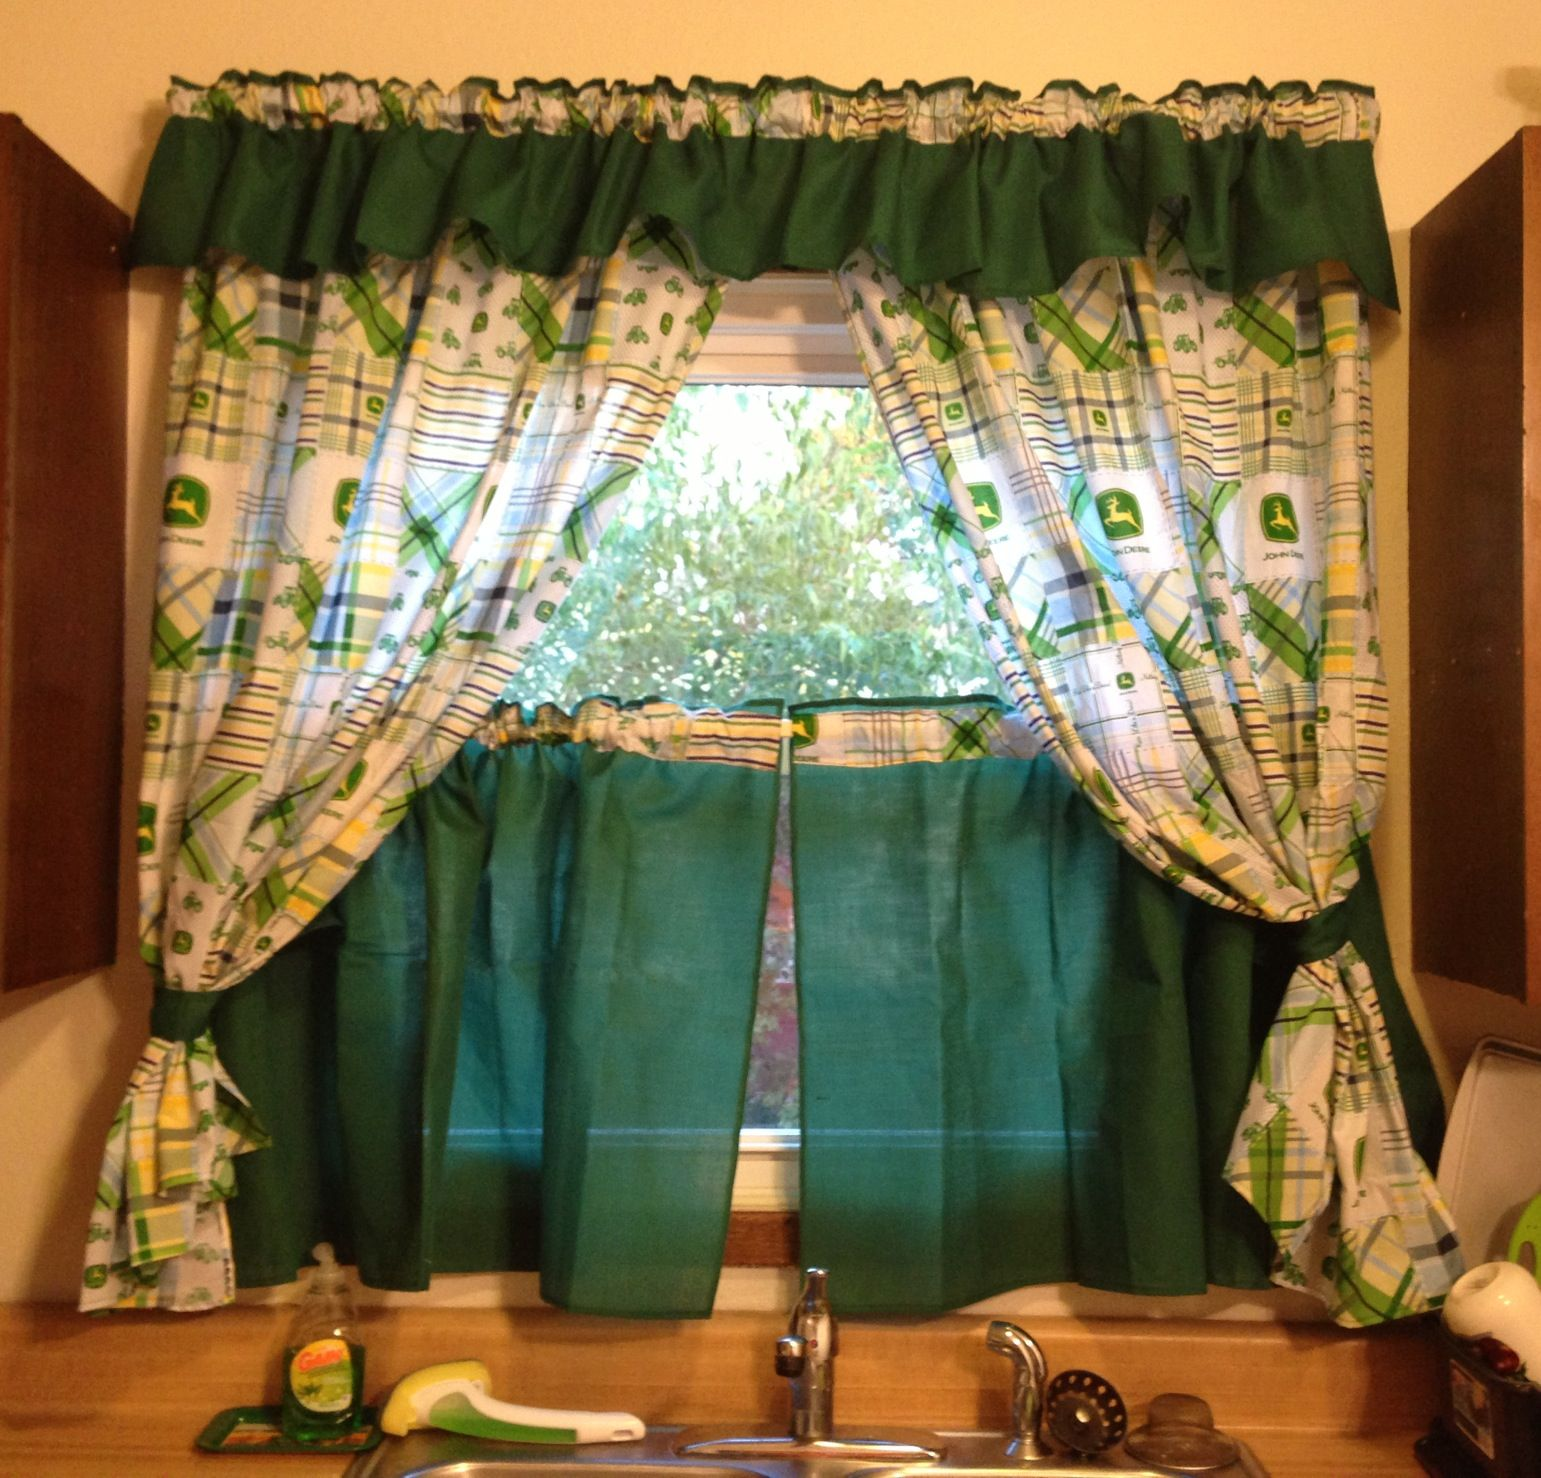 My New John Deere Kitchen Curtains Love Them D